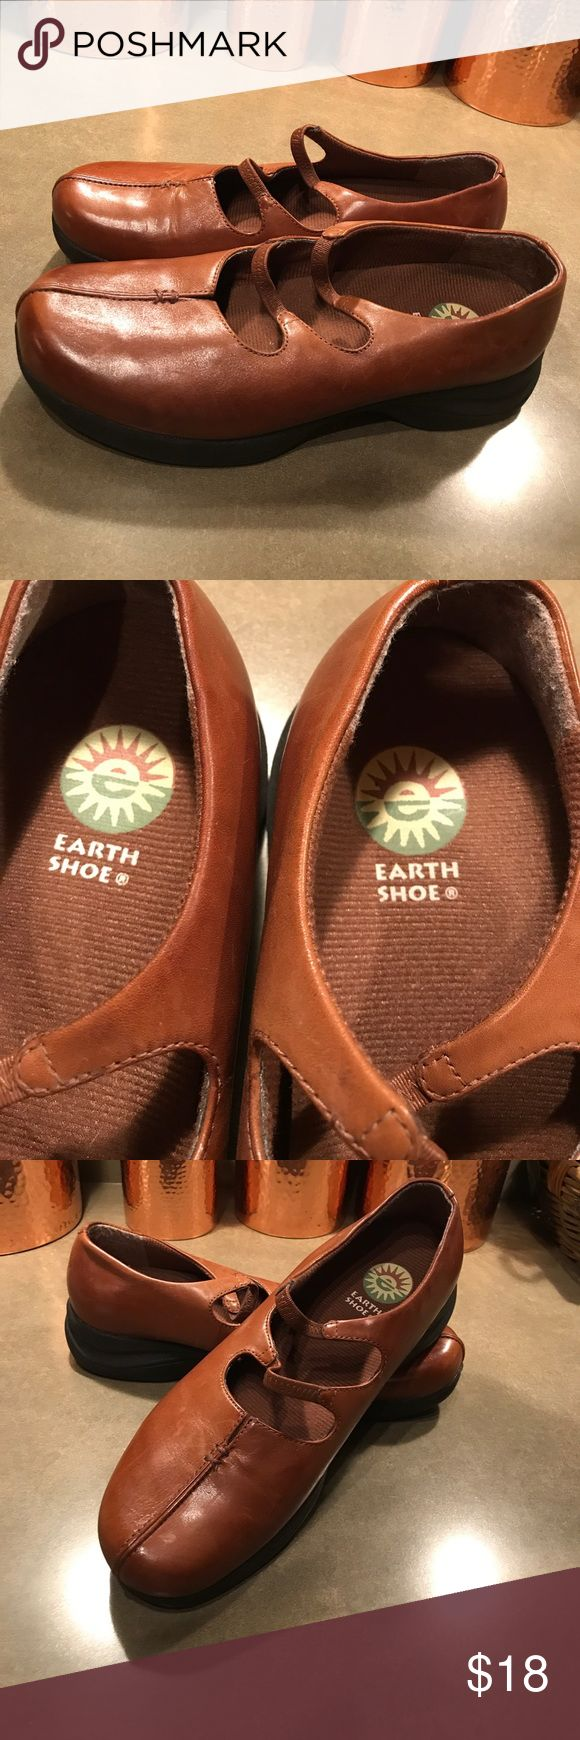 Earth Shoe Brand Women's Leather Mary Jane Shoe Earth Shoe Brand Women's Leather Mary Jane Style Shoe. Except for a few small scuff marks (see photos), these shoes are in good condition.  Details include hand stitching on top front with a little 'v' above that, as well as two elasticized straps to go across the top of the foot. Earth Shoe Shoes Flats & Loafers